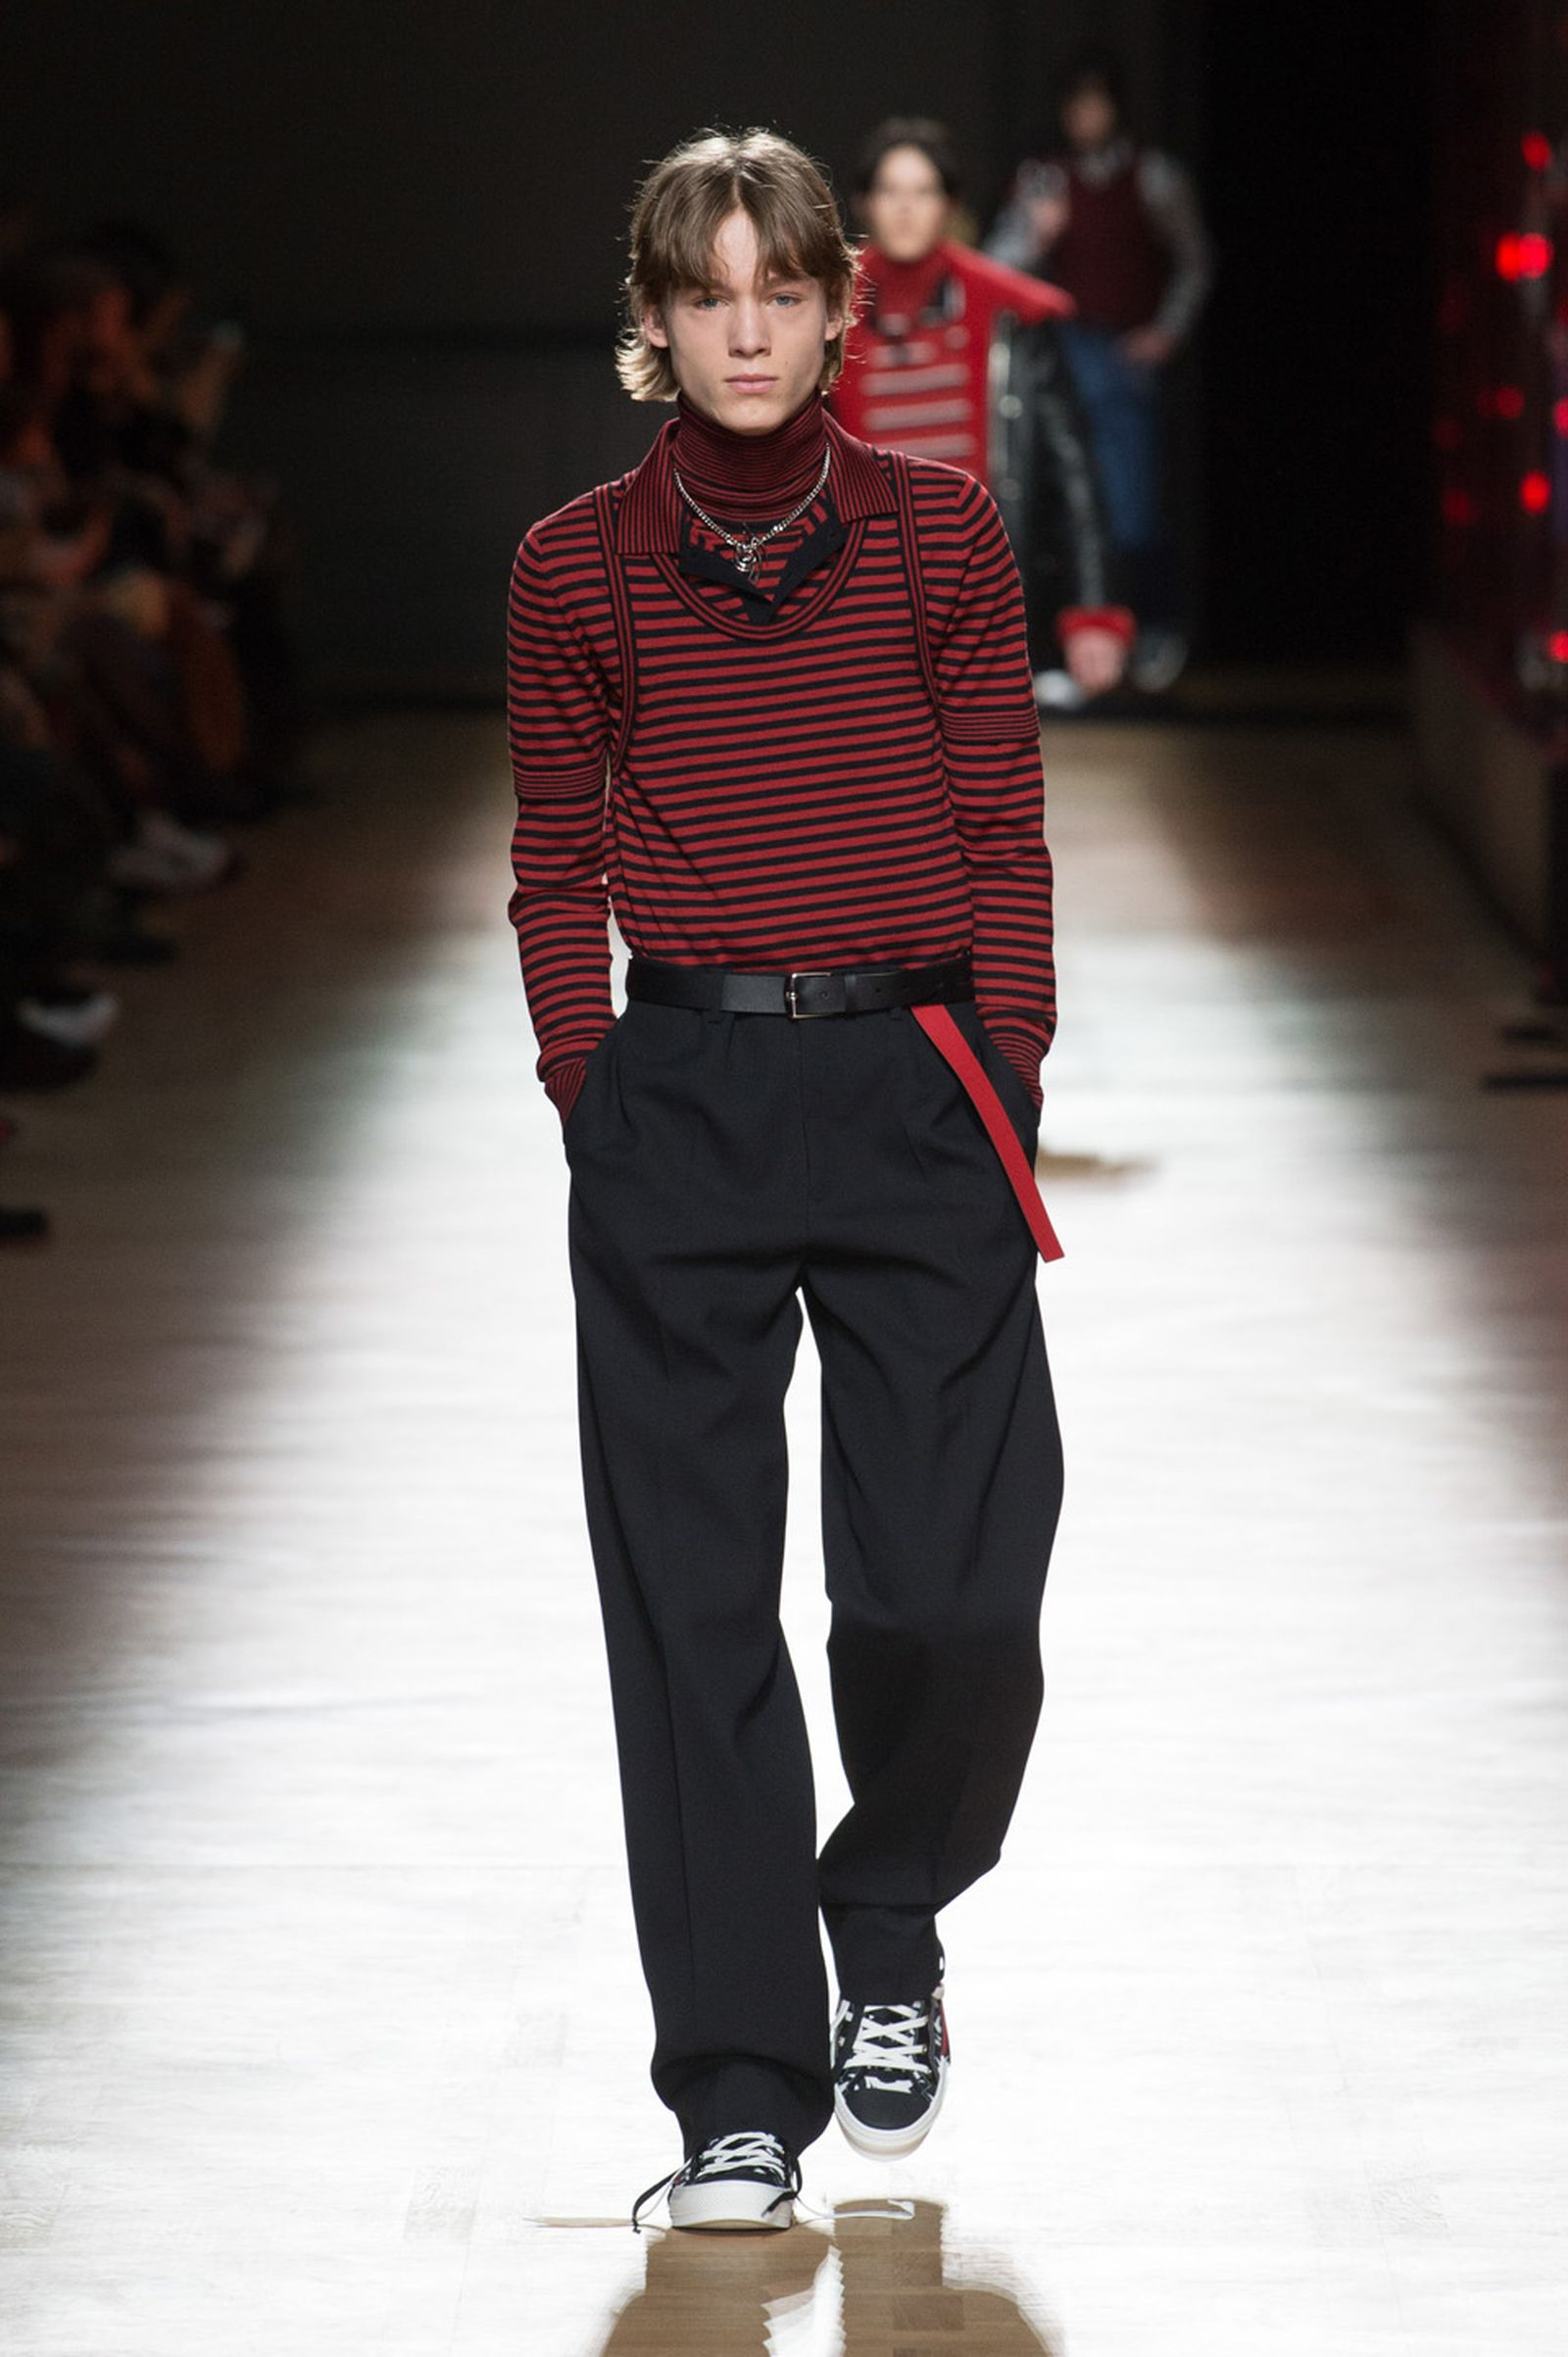 DIOR HOMME WINTER 18 19 BY PATRICE STABLE look18 Fall/WInter 2018 runway